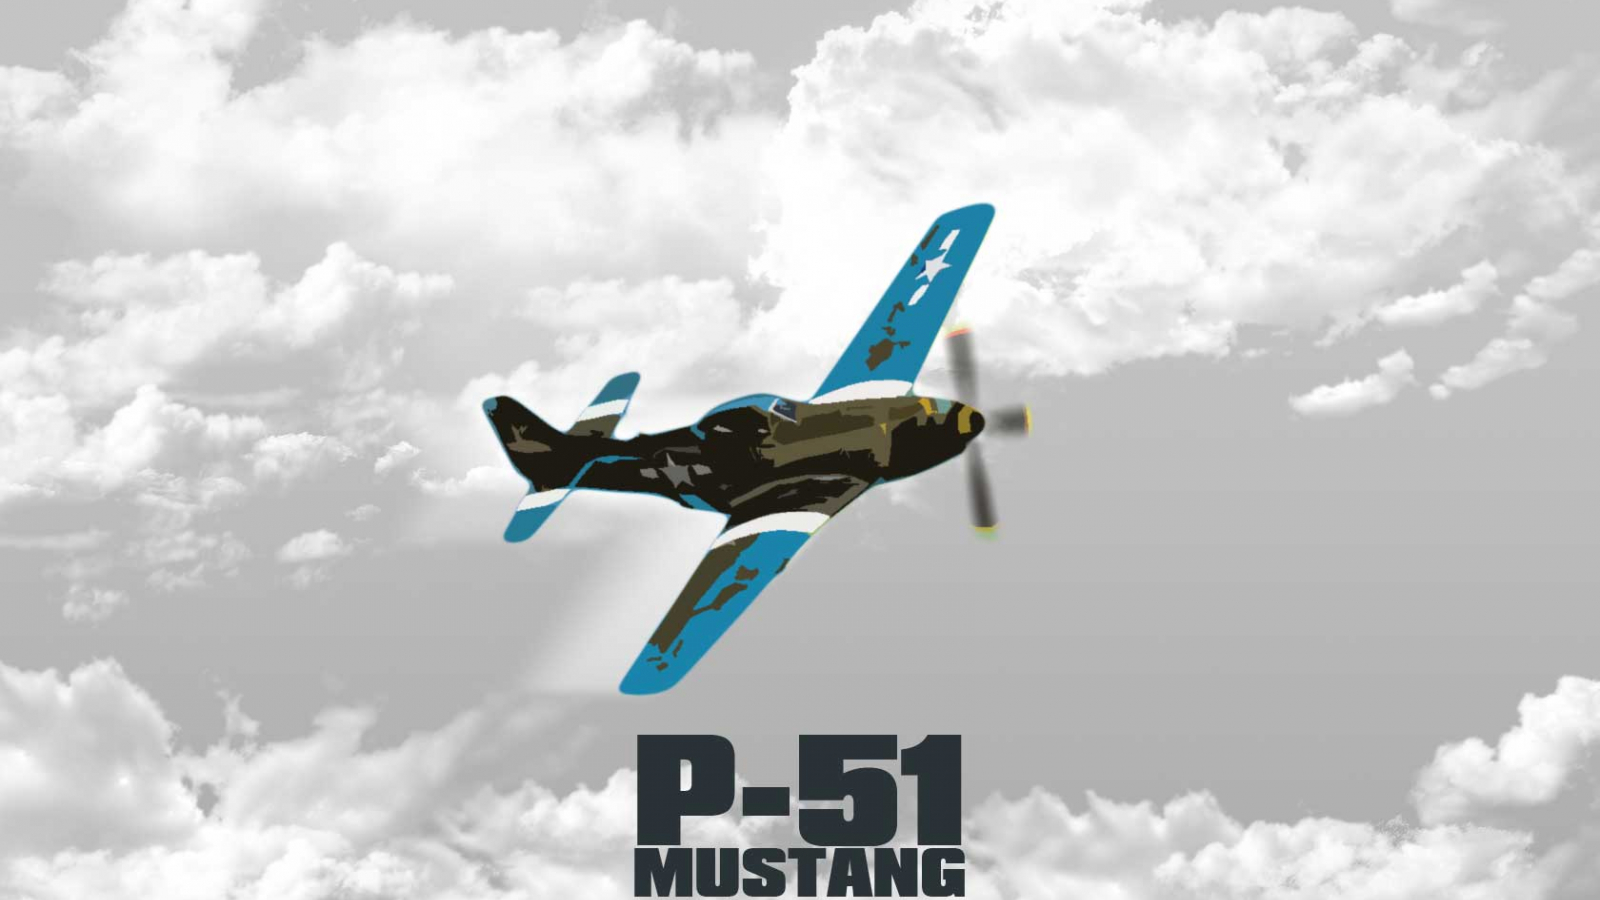 Free Download P51 Mustang Wallpaper By Kurtmancelik Customization